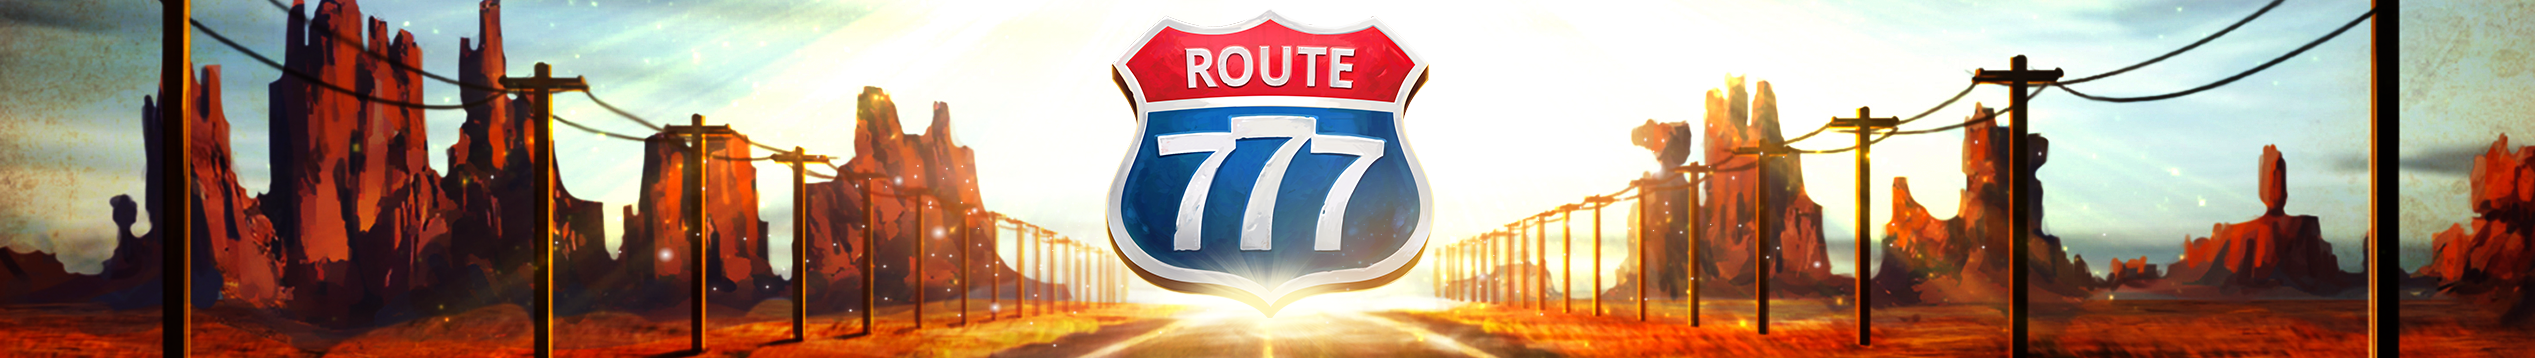 Test nye Route 777